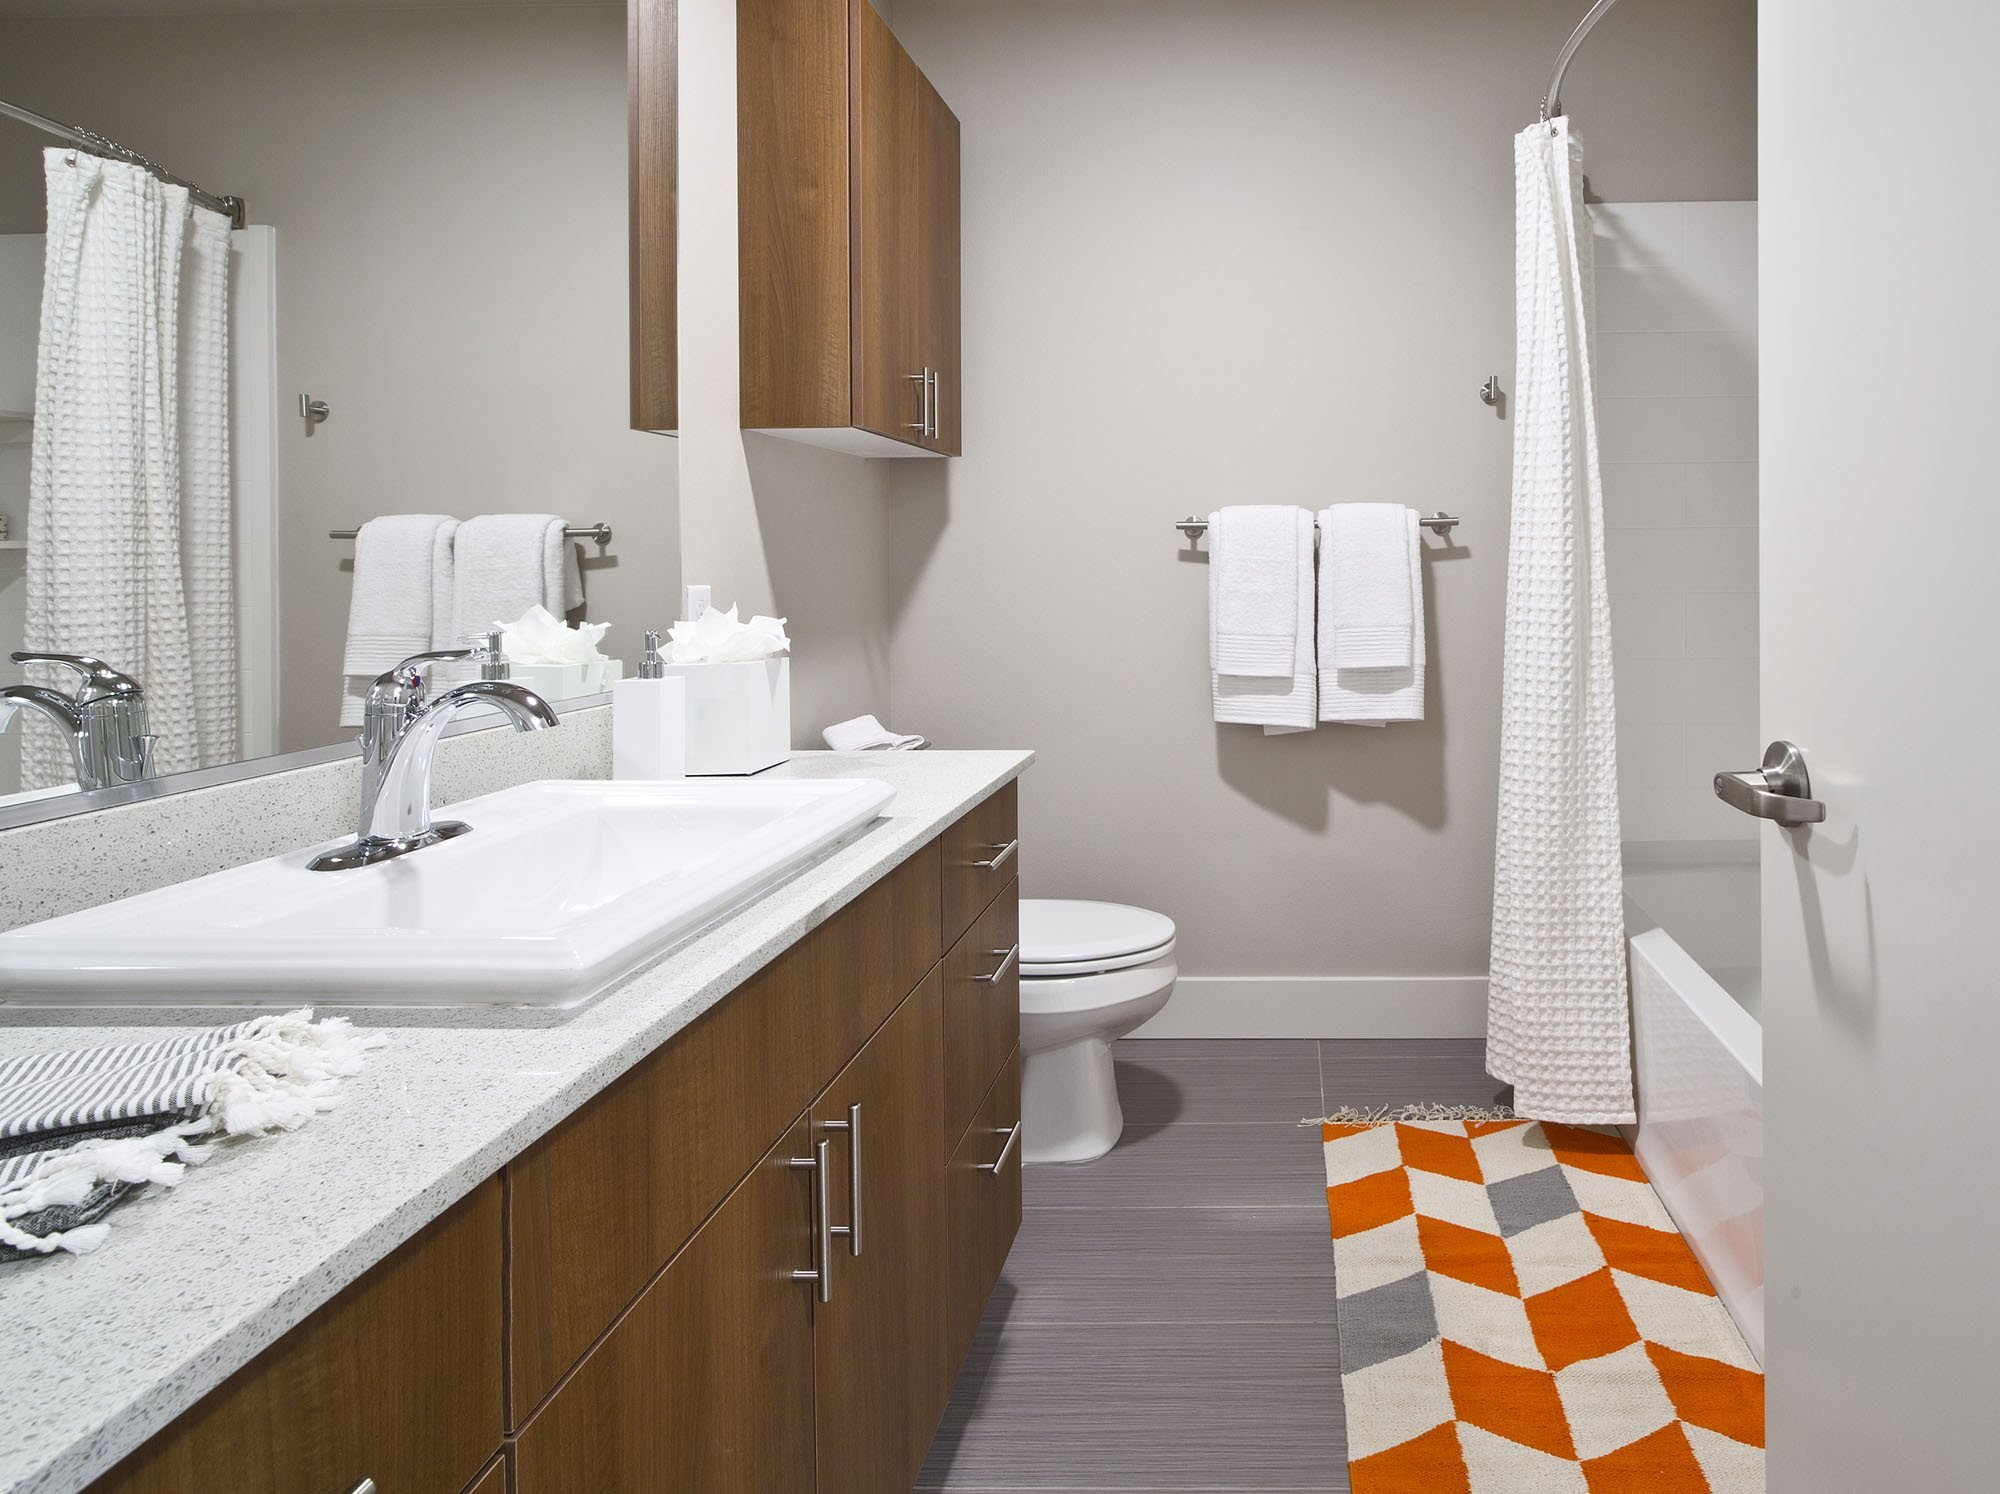 Beautifully Tiled Bathrooms at Astro Apartments, Seattle, WA,98109